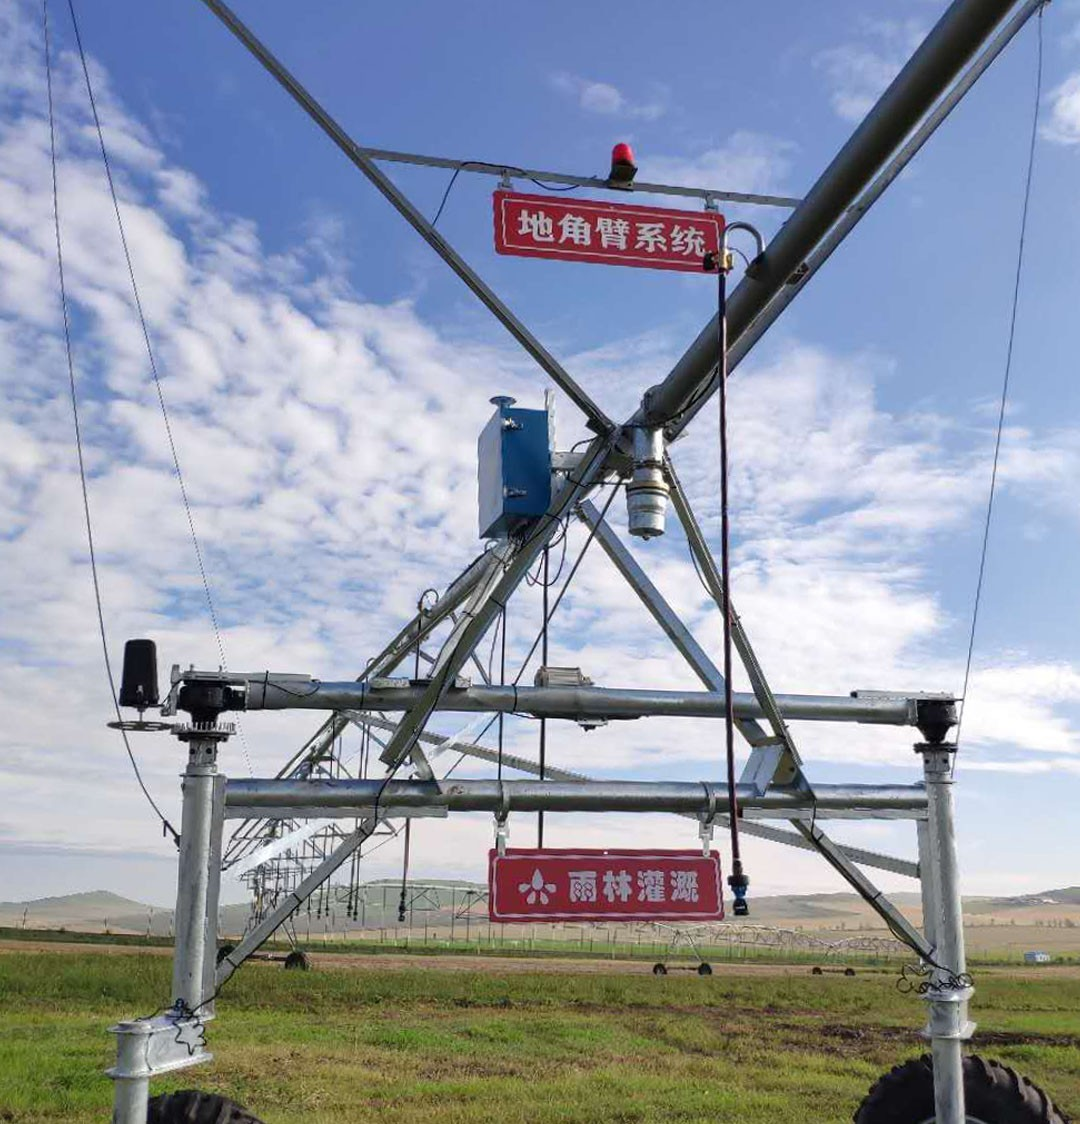 Self-Driven Center Pivot Irrigation Equipment Manufacturers, Self-Driven Center Pivot Irrigation Equipment Factory, Supply Self-Driven Center Pivot Irrigation Equipment